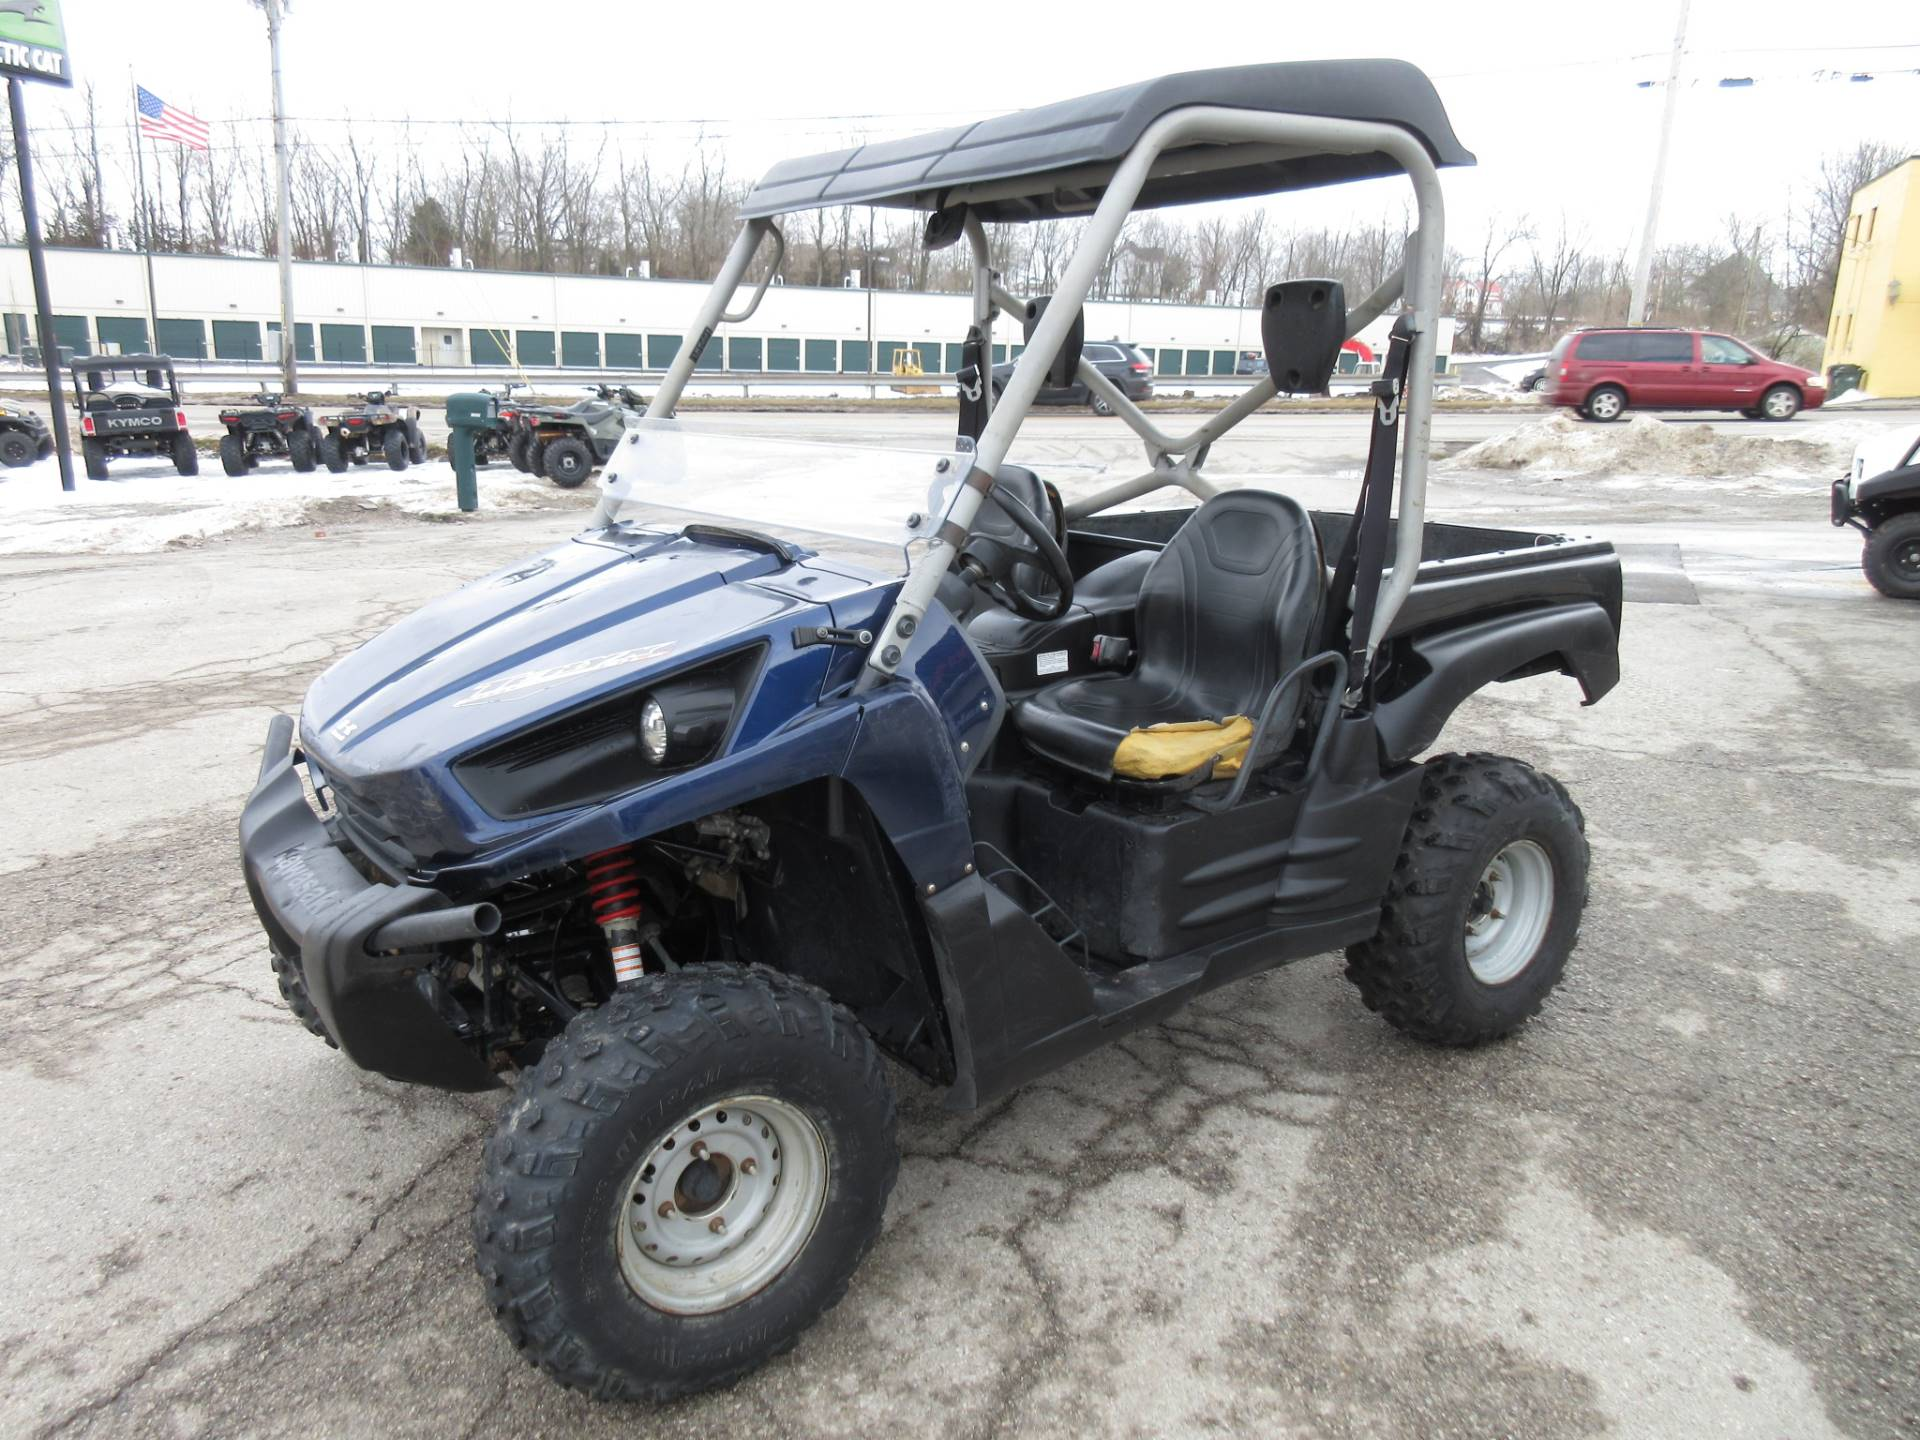 2011 Kawasaki Teryx™ 750 FI 4x4 LE in Georgetown, Kentucky - Photo 7